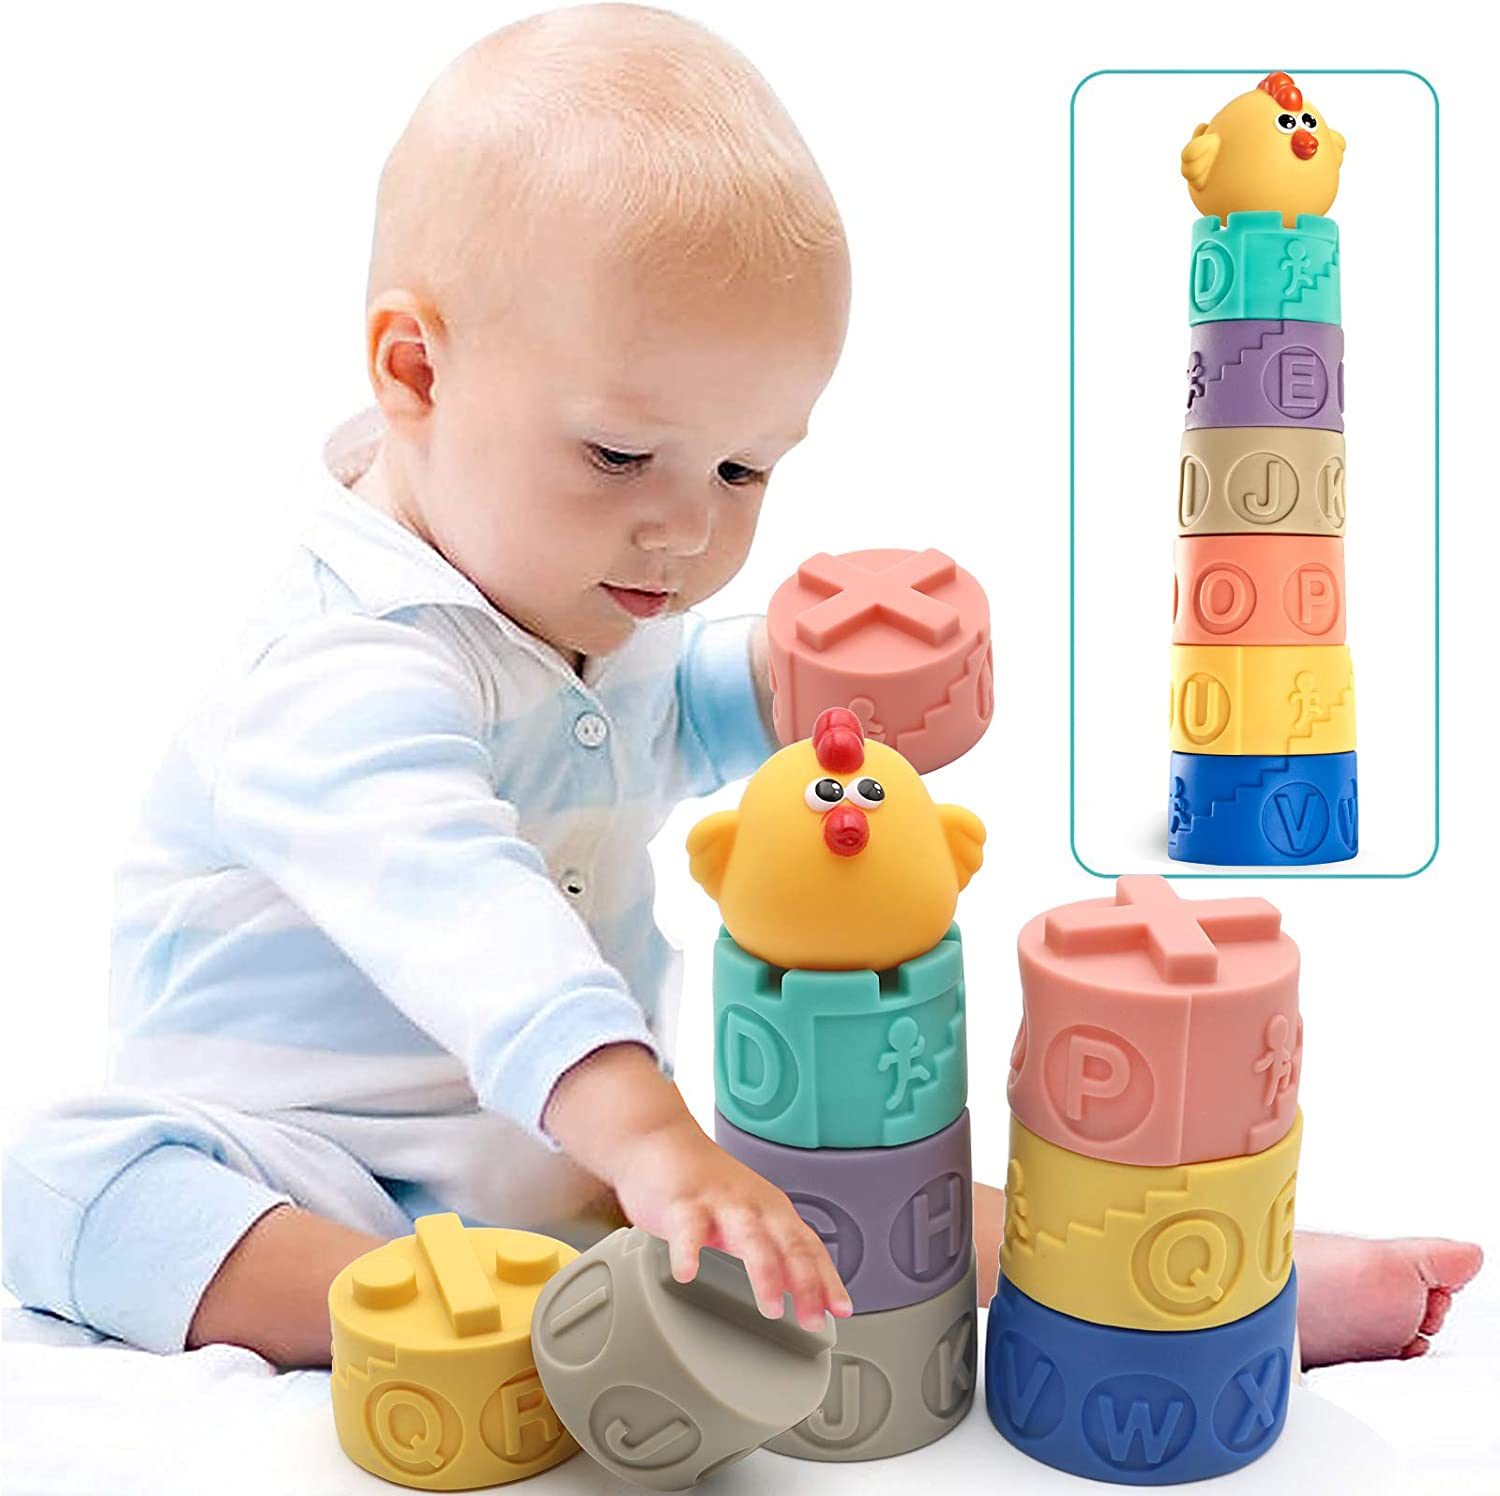 Max 85% OFF Luxury goods Soft Colorful Stacking Blocks,Building for Blocks Toddler